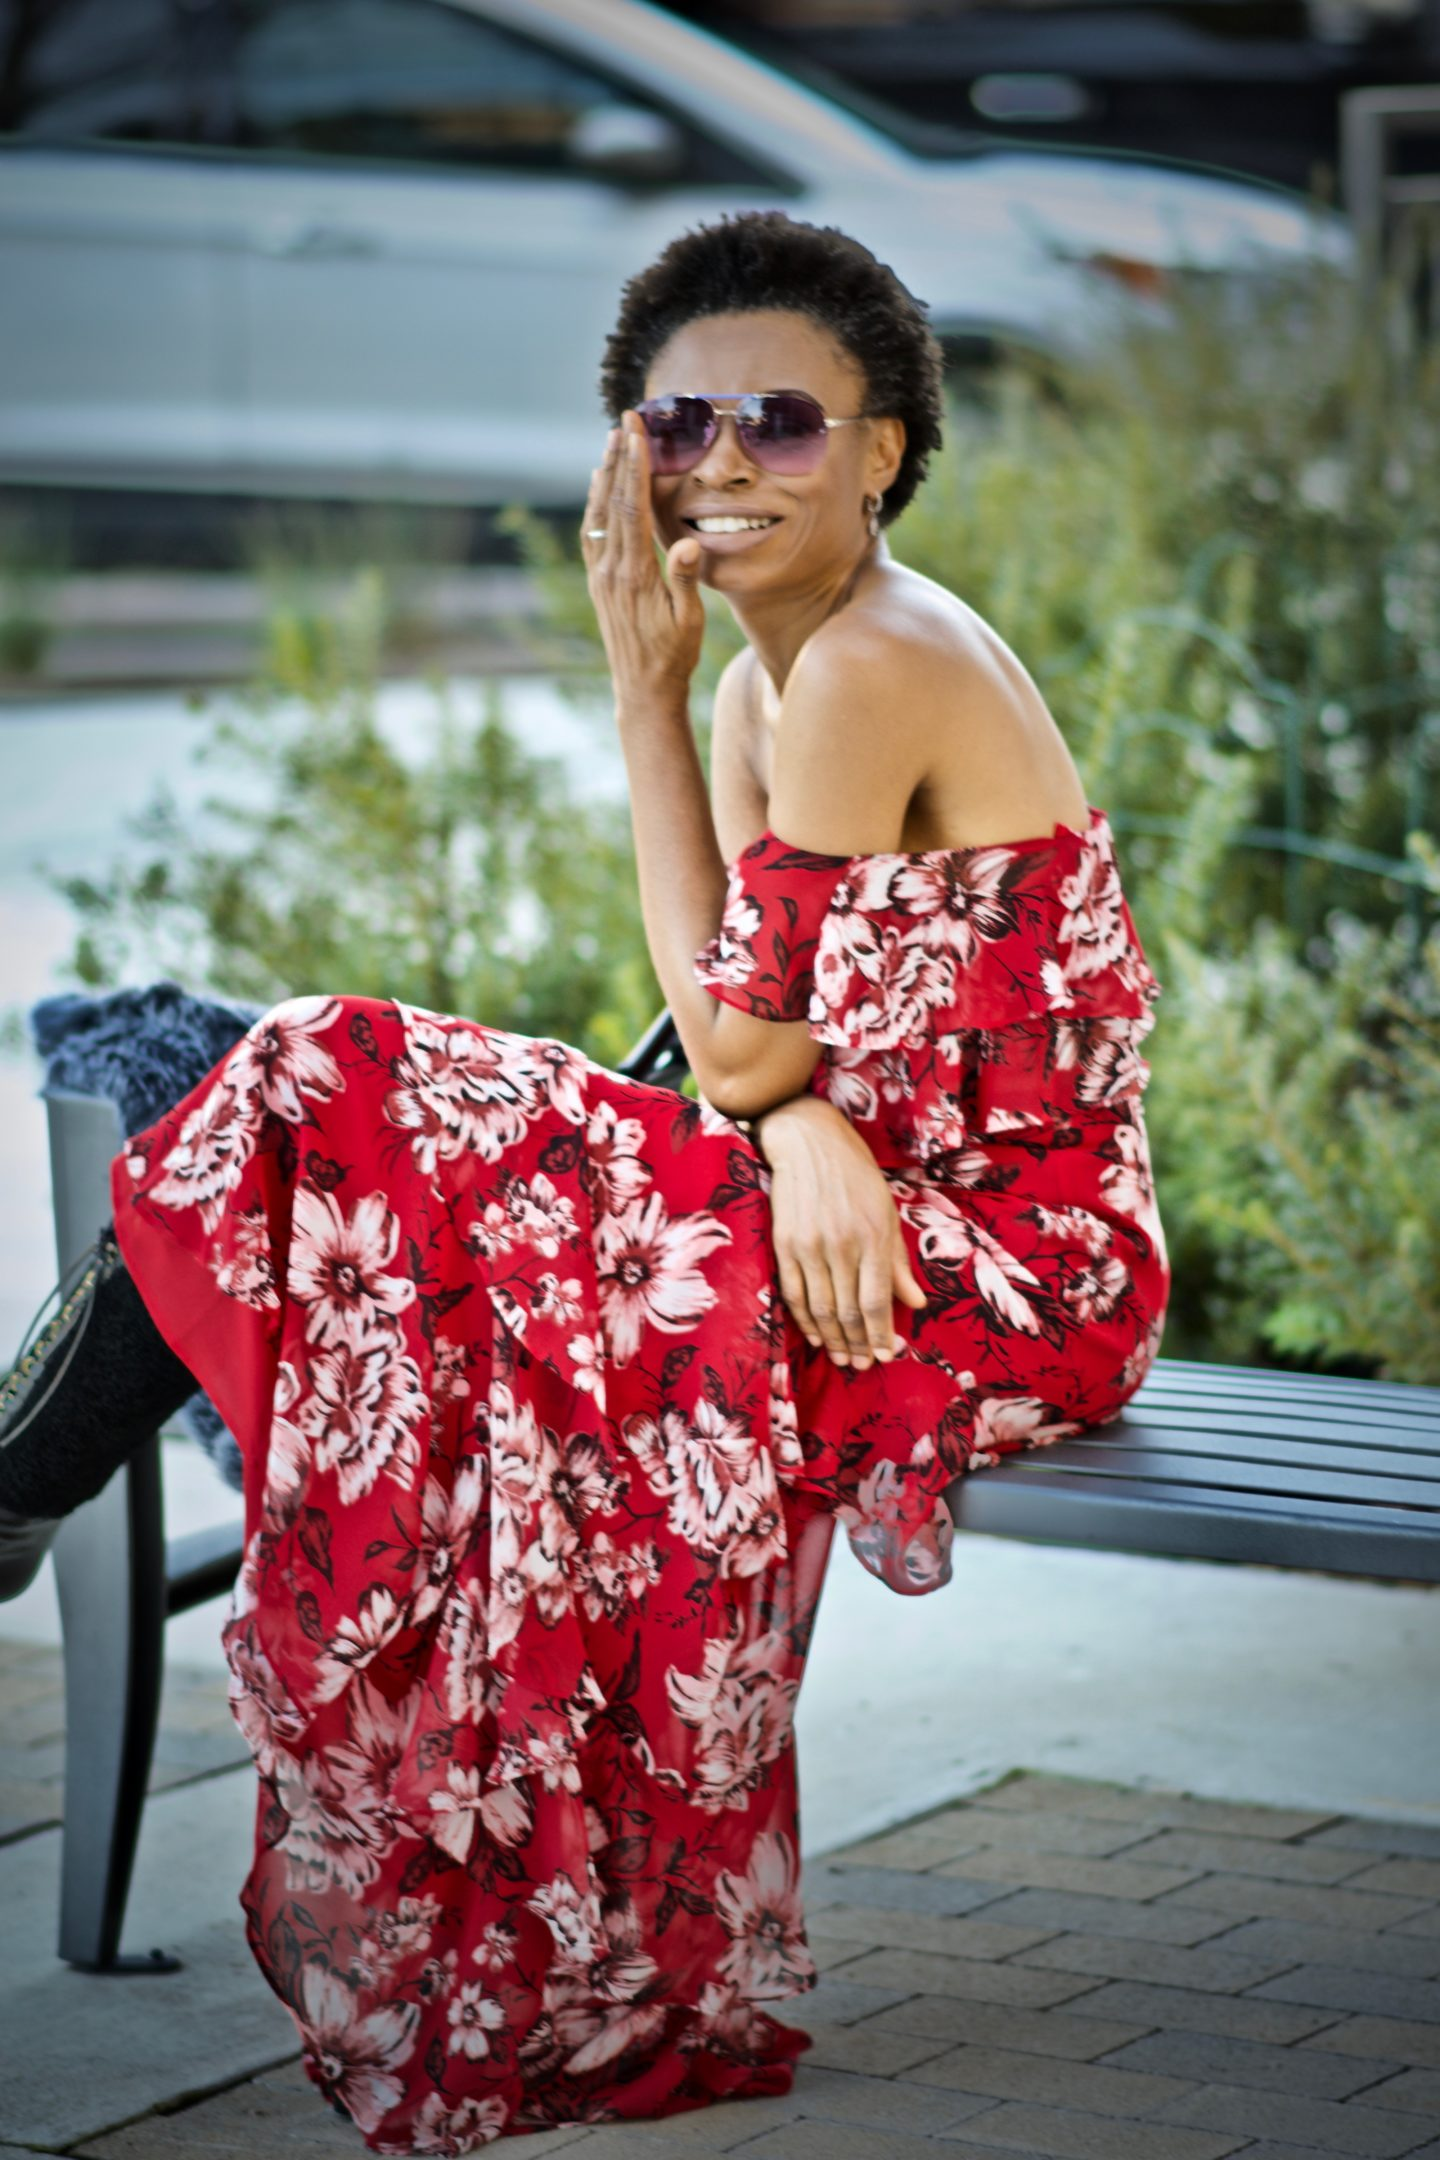 Styling Off the shoulder floral maxi dress year-round